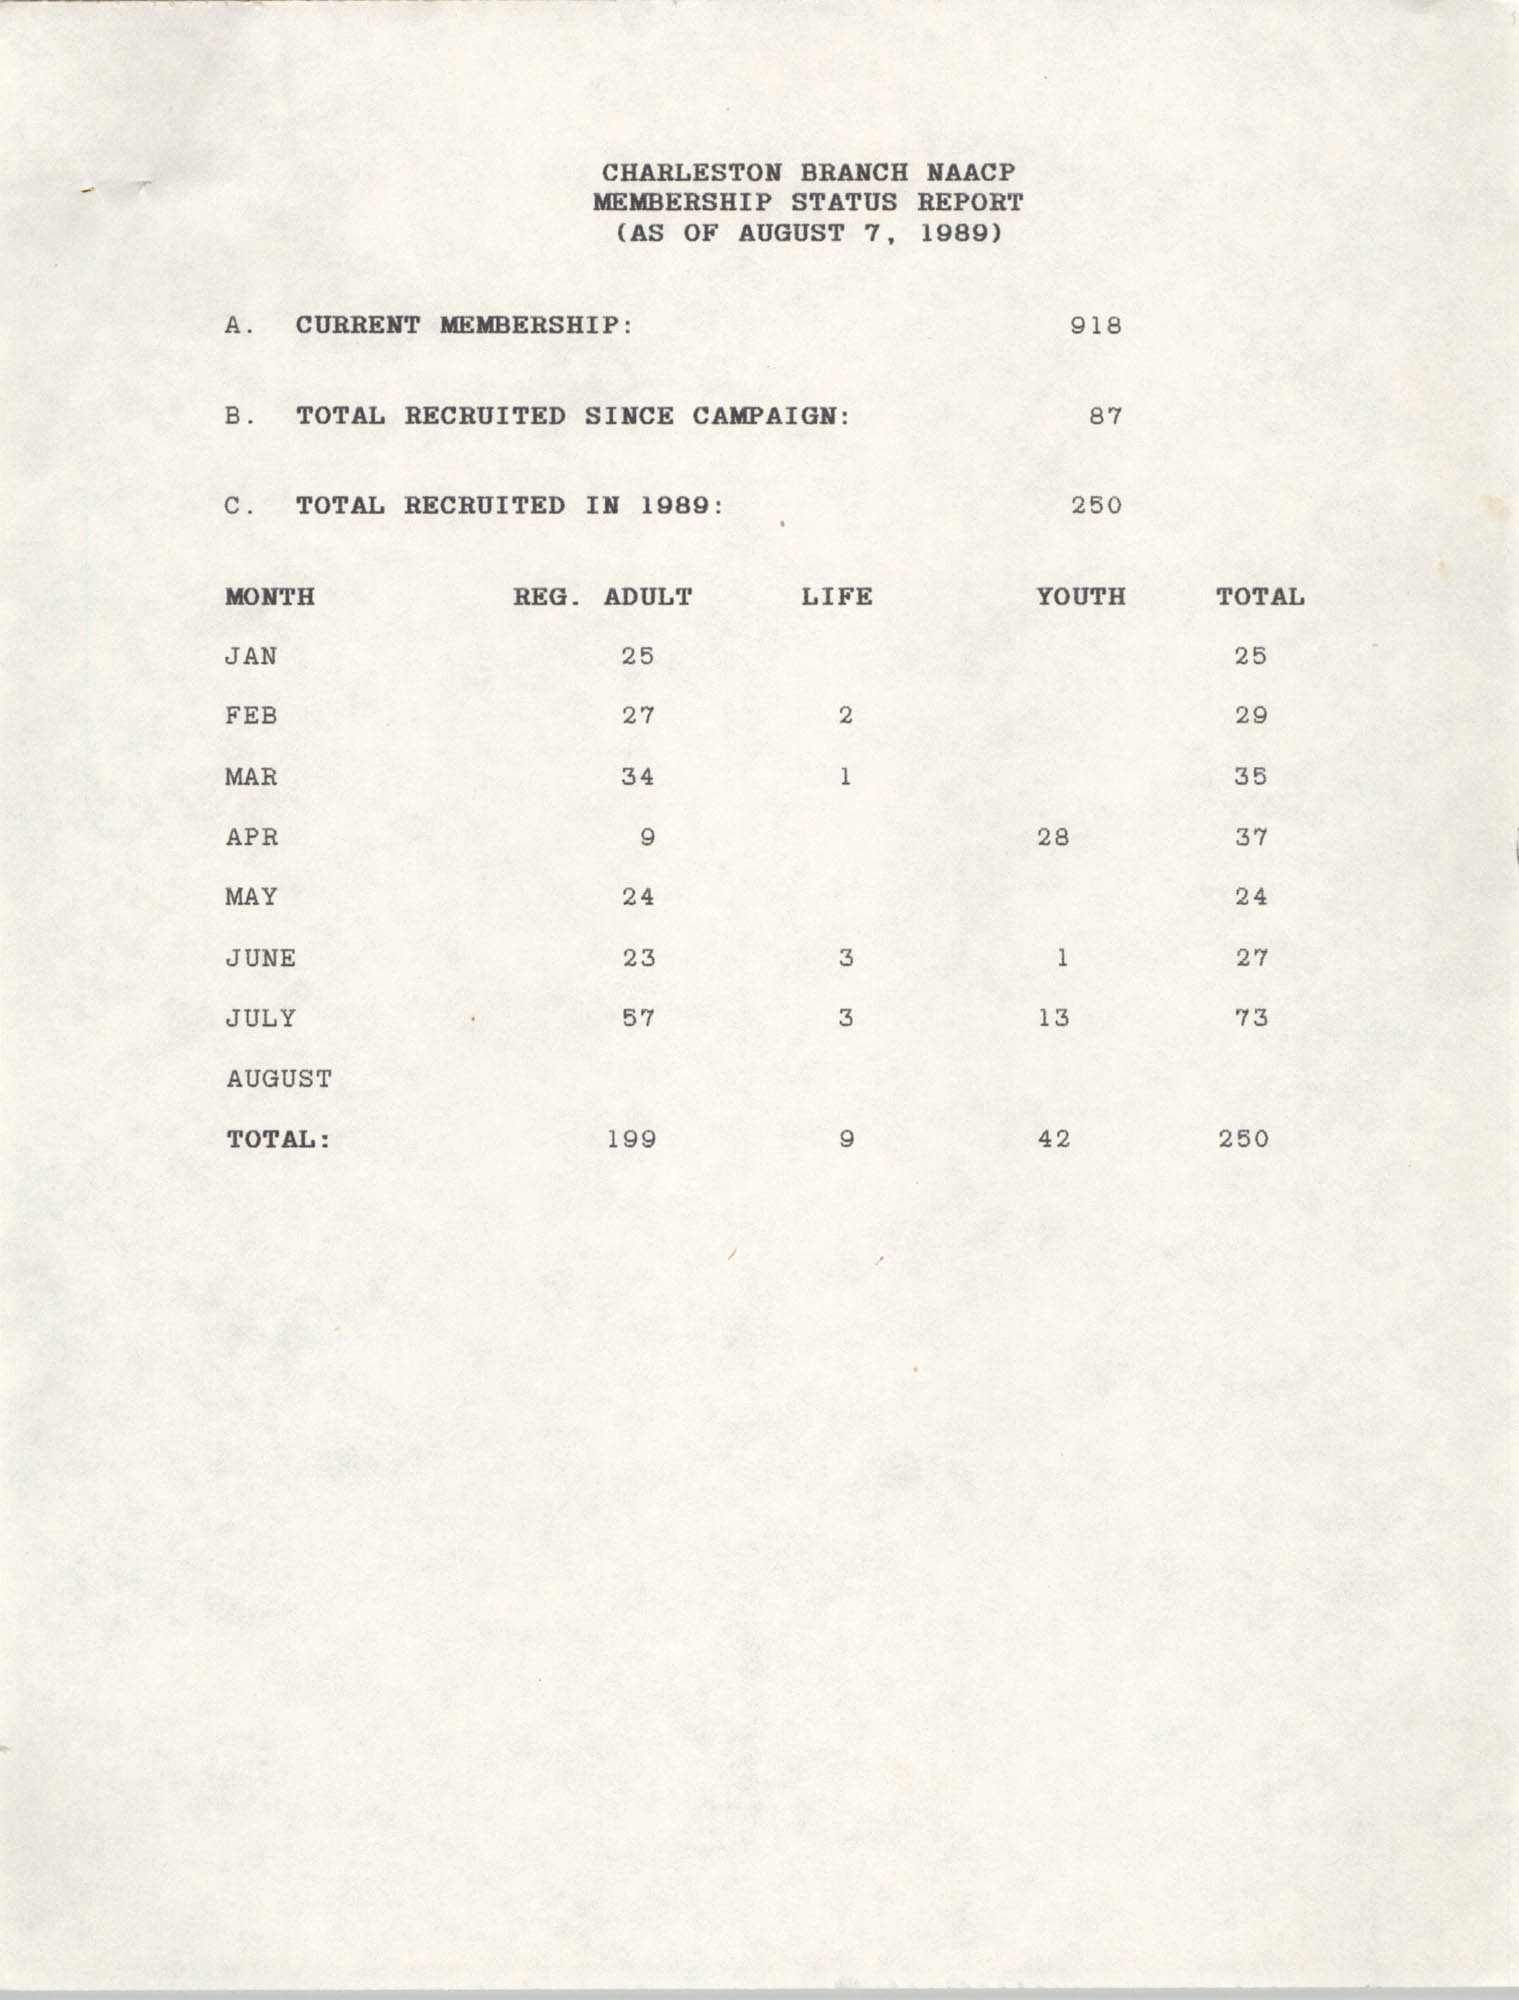 Membership Status Report, National Association for the Advancement of Colored People, August 7, 1989